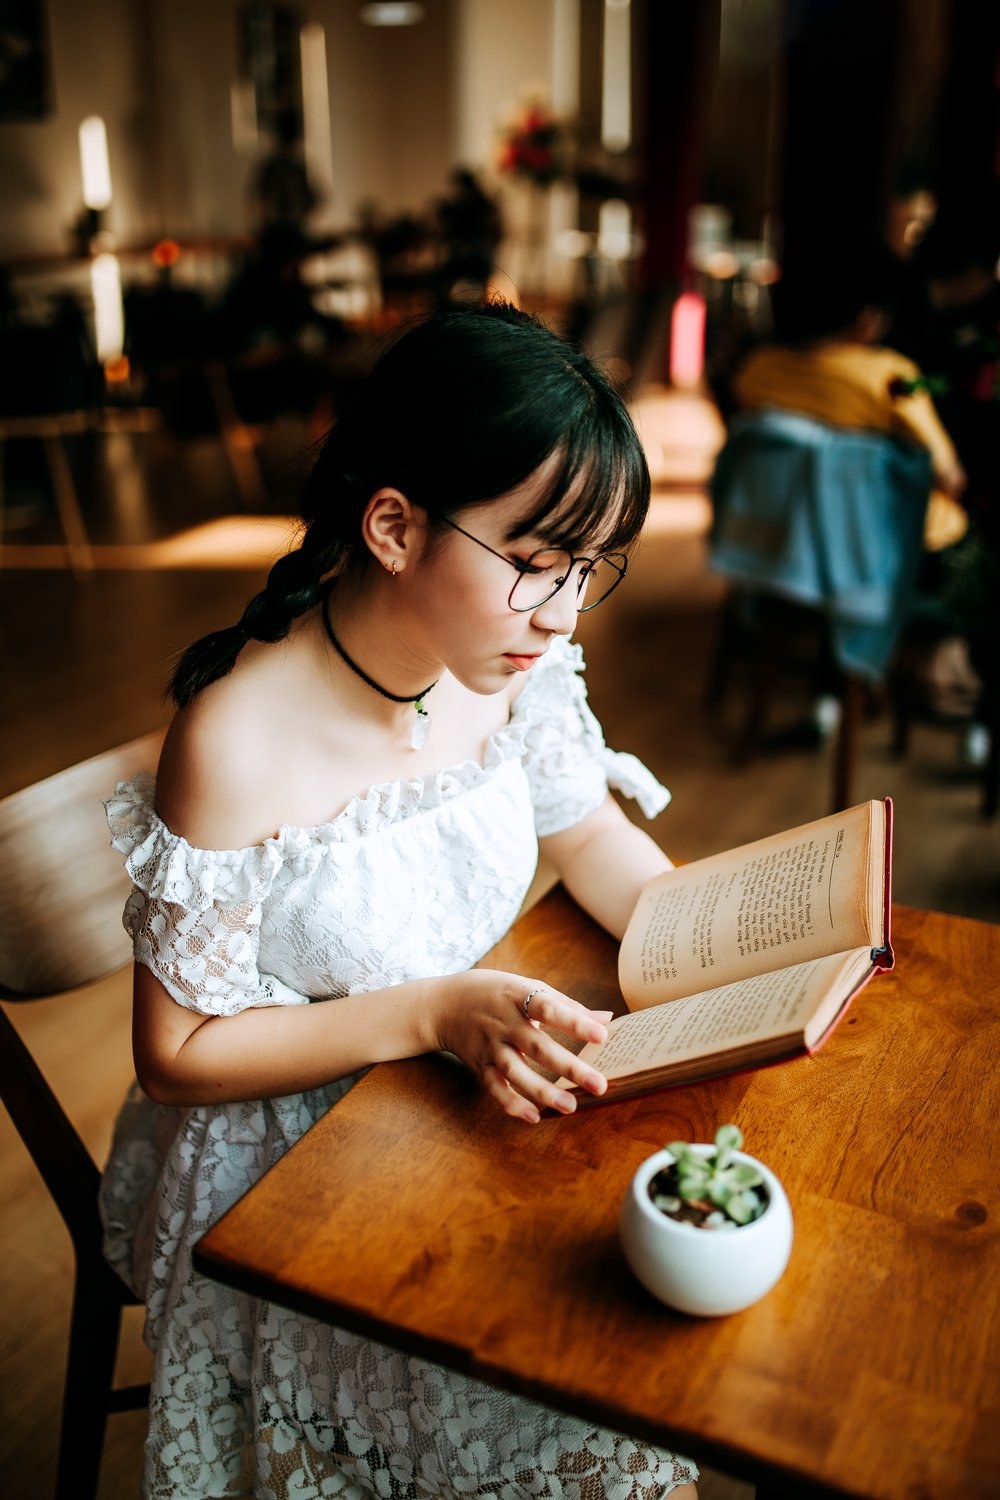 """Look for readers who represent the characters you're writing."" Photo credit: Anthony Tran via Unsplash"